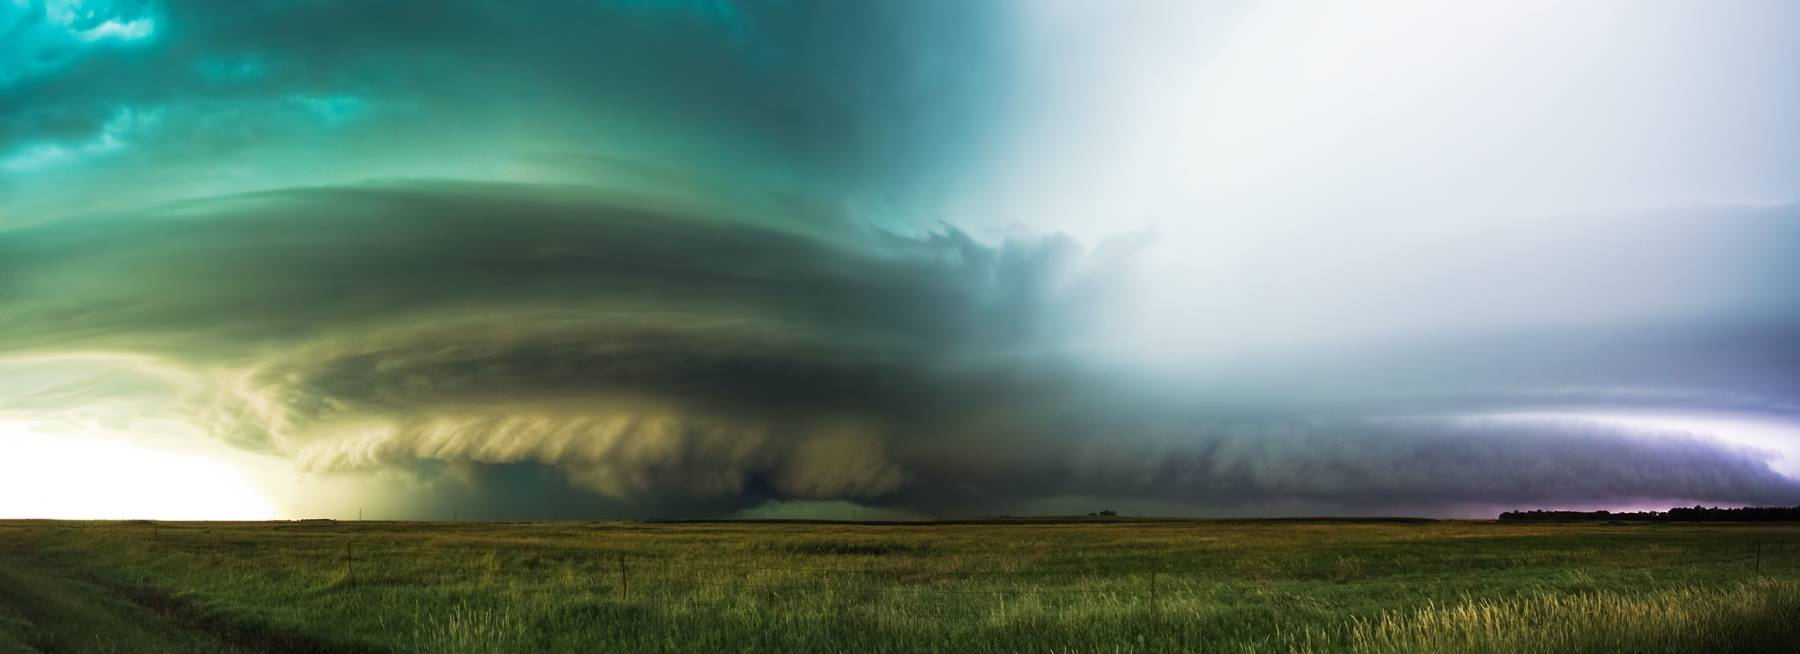 Evan's photograph of the world-record hailstorm in Vivian, South Dakota (July 2010).